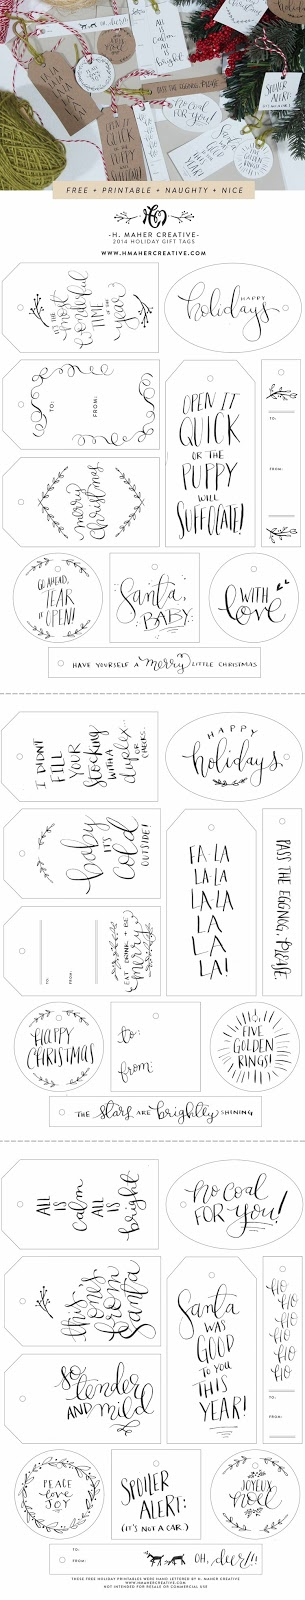 http://www.holleymaherblog.com/holley-maher-blog/2014/11/20/naughty-nice-30-free-hand-lettered-holiday-gift-tag-printables